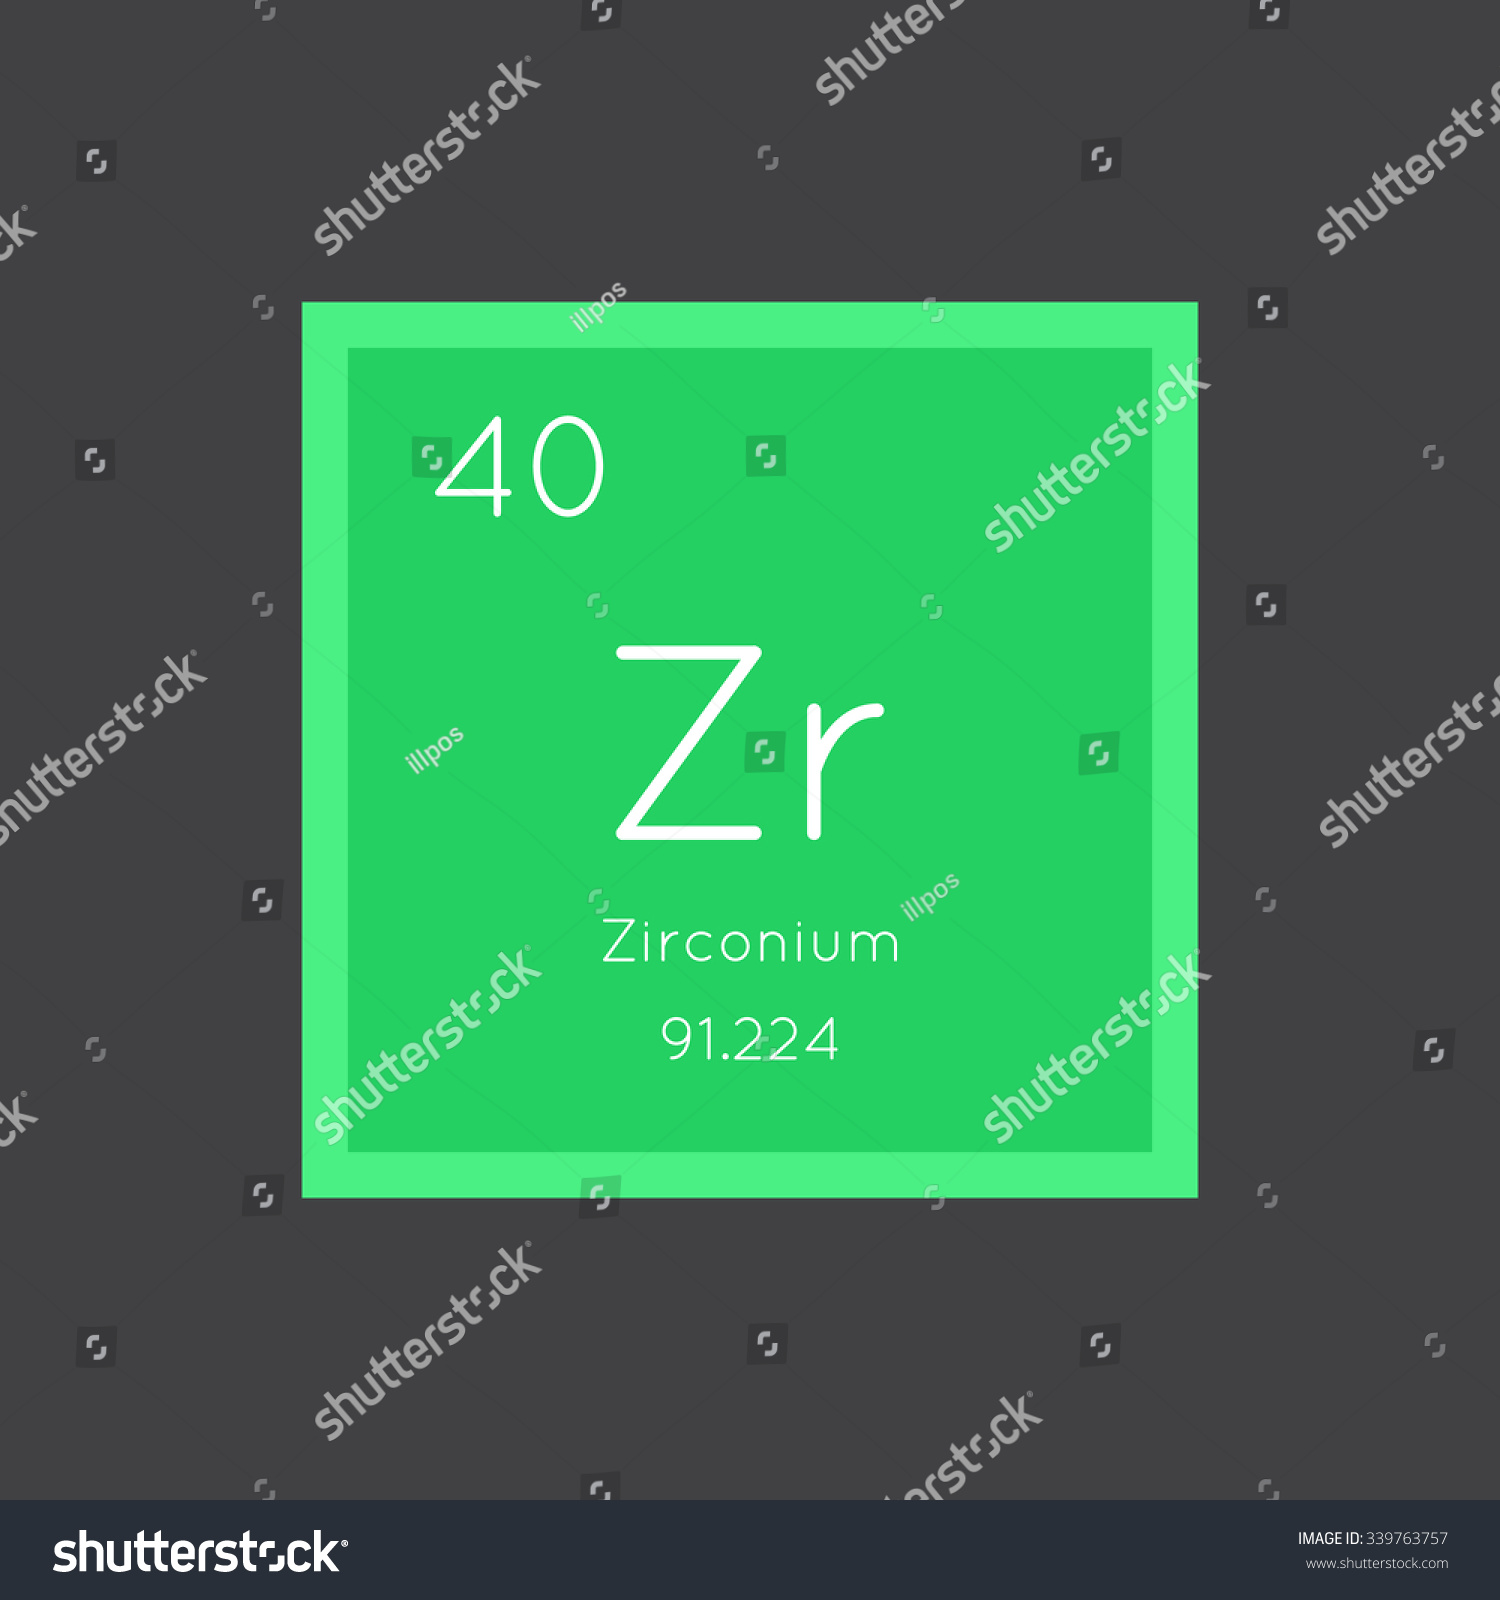 Periodic table zr define a political map kenwood stereo wiring zirconium simple style tile icon chemical stock vector 339763757 stock vector zirconium simple style tile icon chemical element of periodic table vector urtaz Gallery